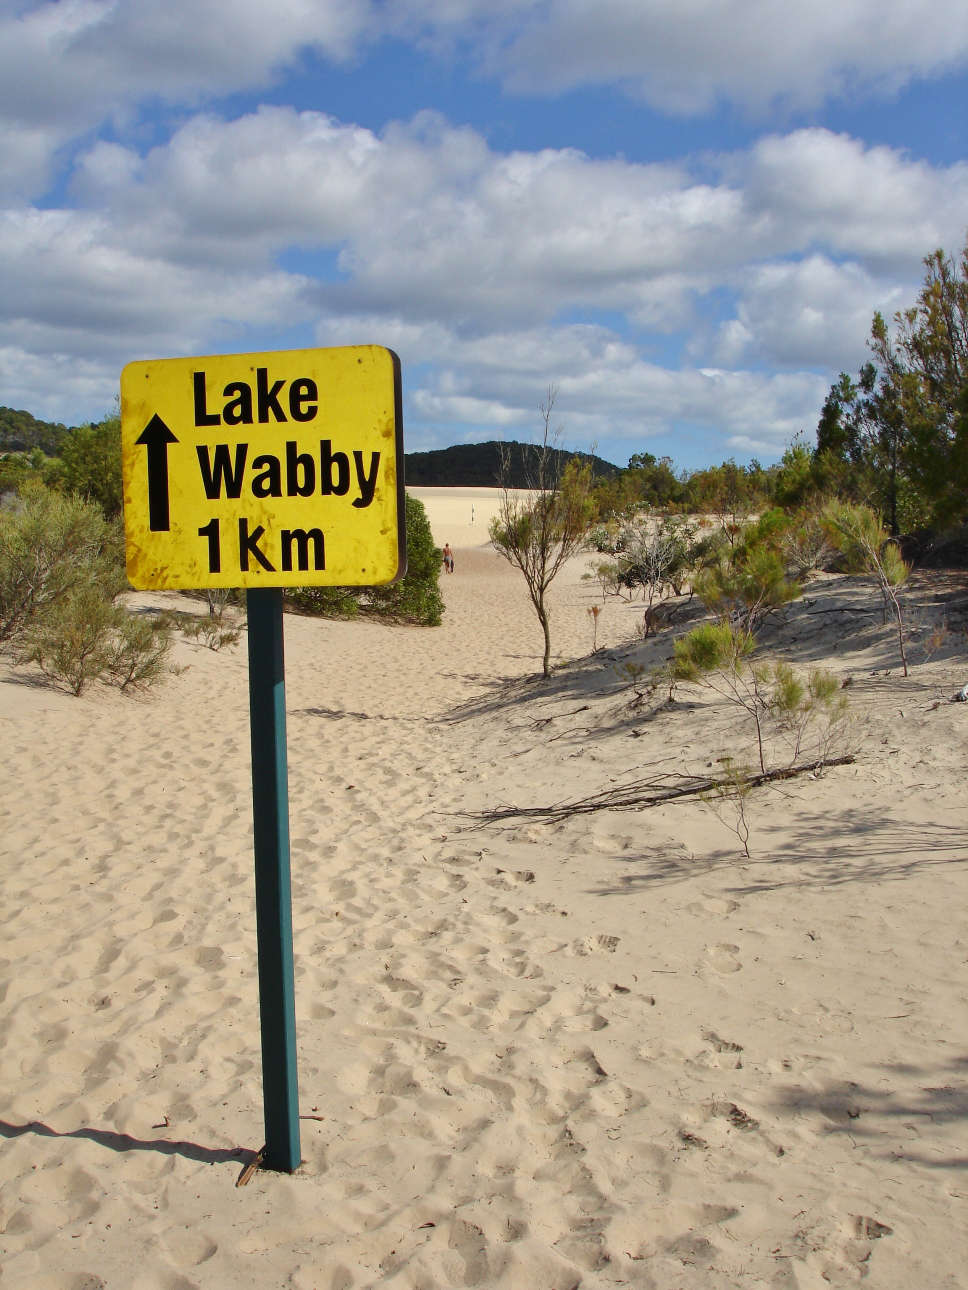 Walking to Fraser Island's Lake Wabby